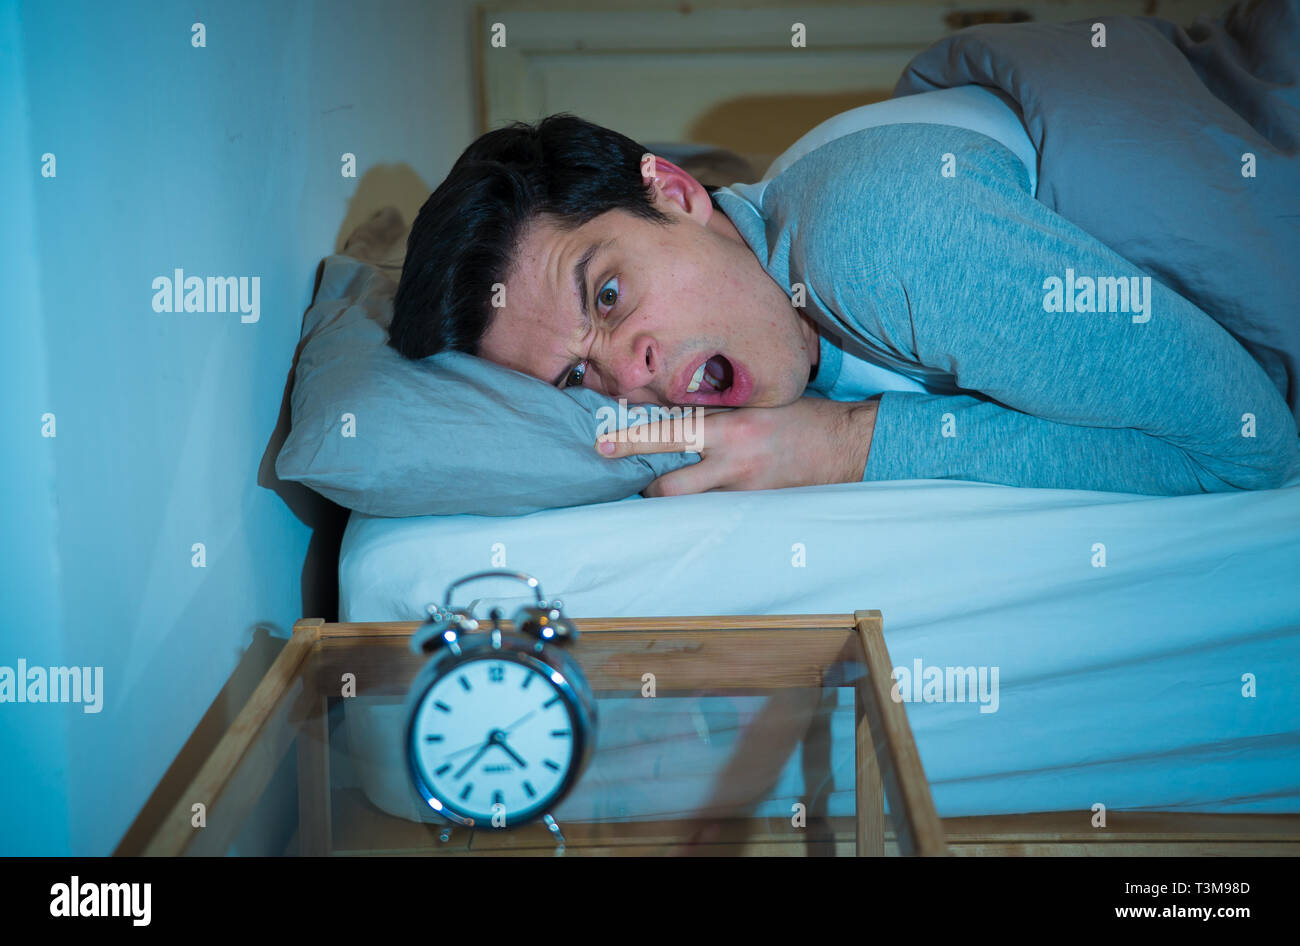 Sleepless and desperate young man awake at night not able to sleep, feeling frustrated and worried looking in distress at clock suffering from insomni - Stock Image